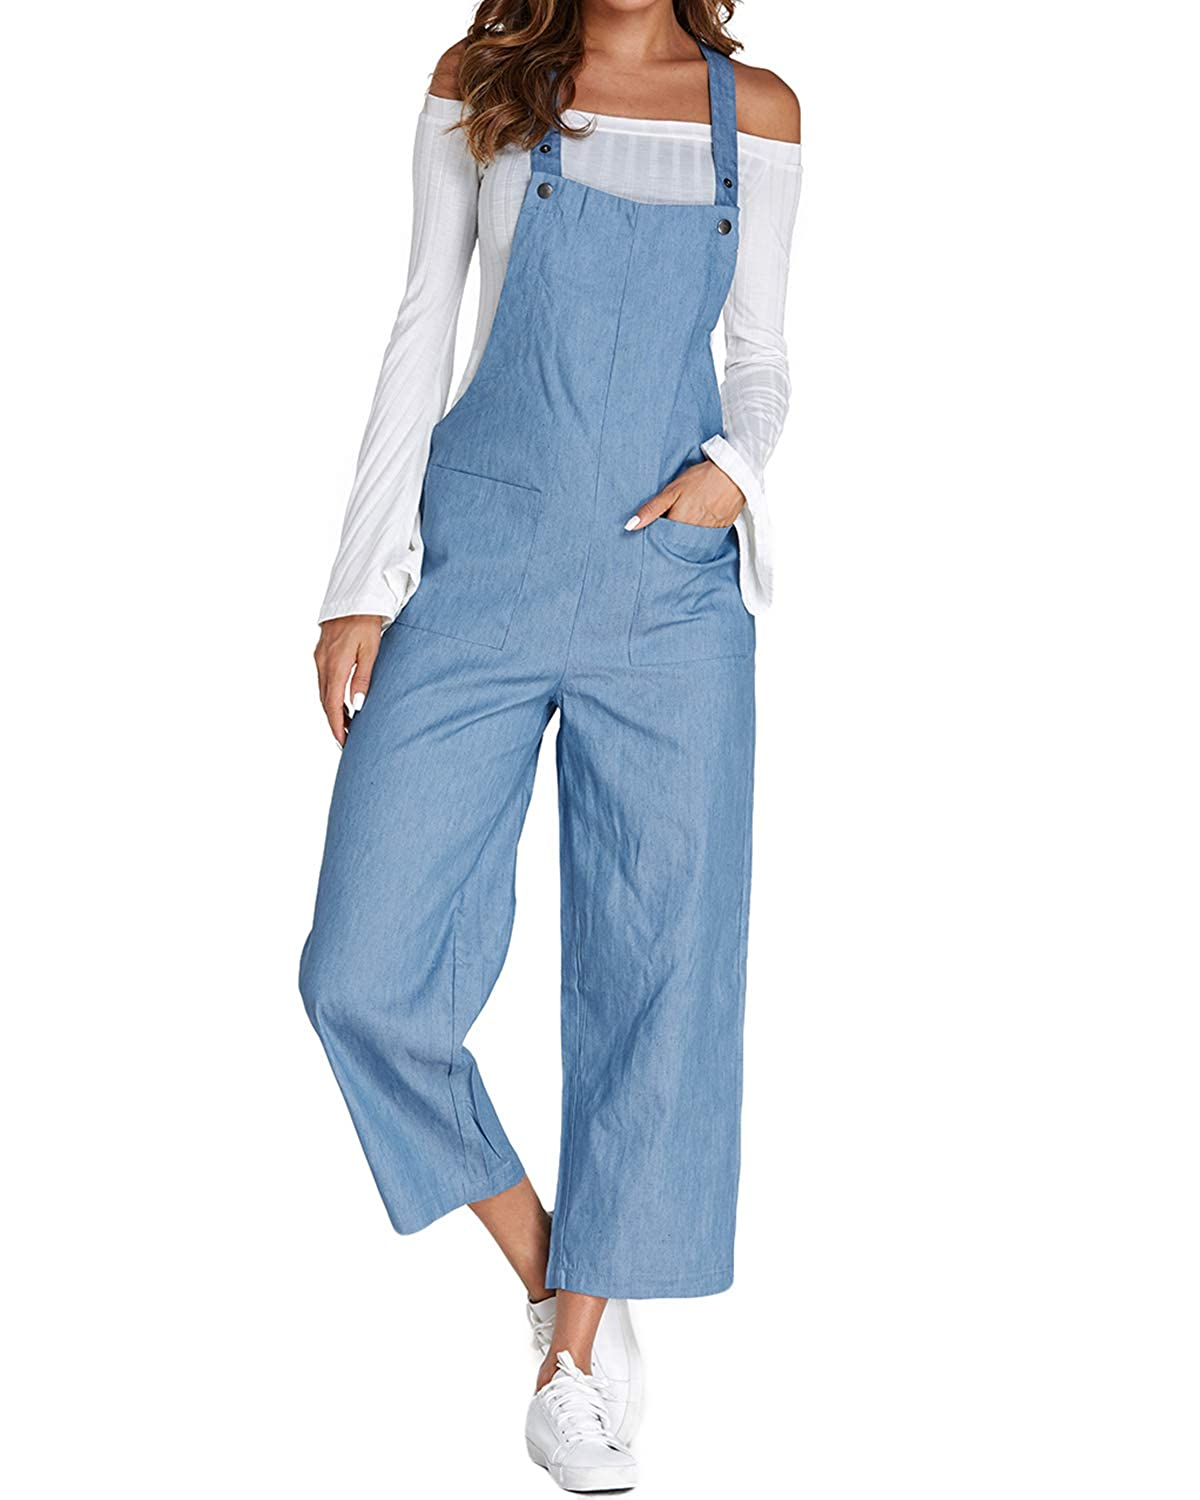 ACHIOOWA Women's Dungarees Romper Jumpsuit Playsuit Sleeveless Baggy Loose Trousers Pants Overalls